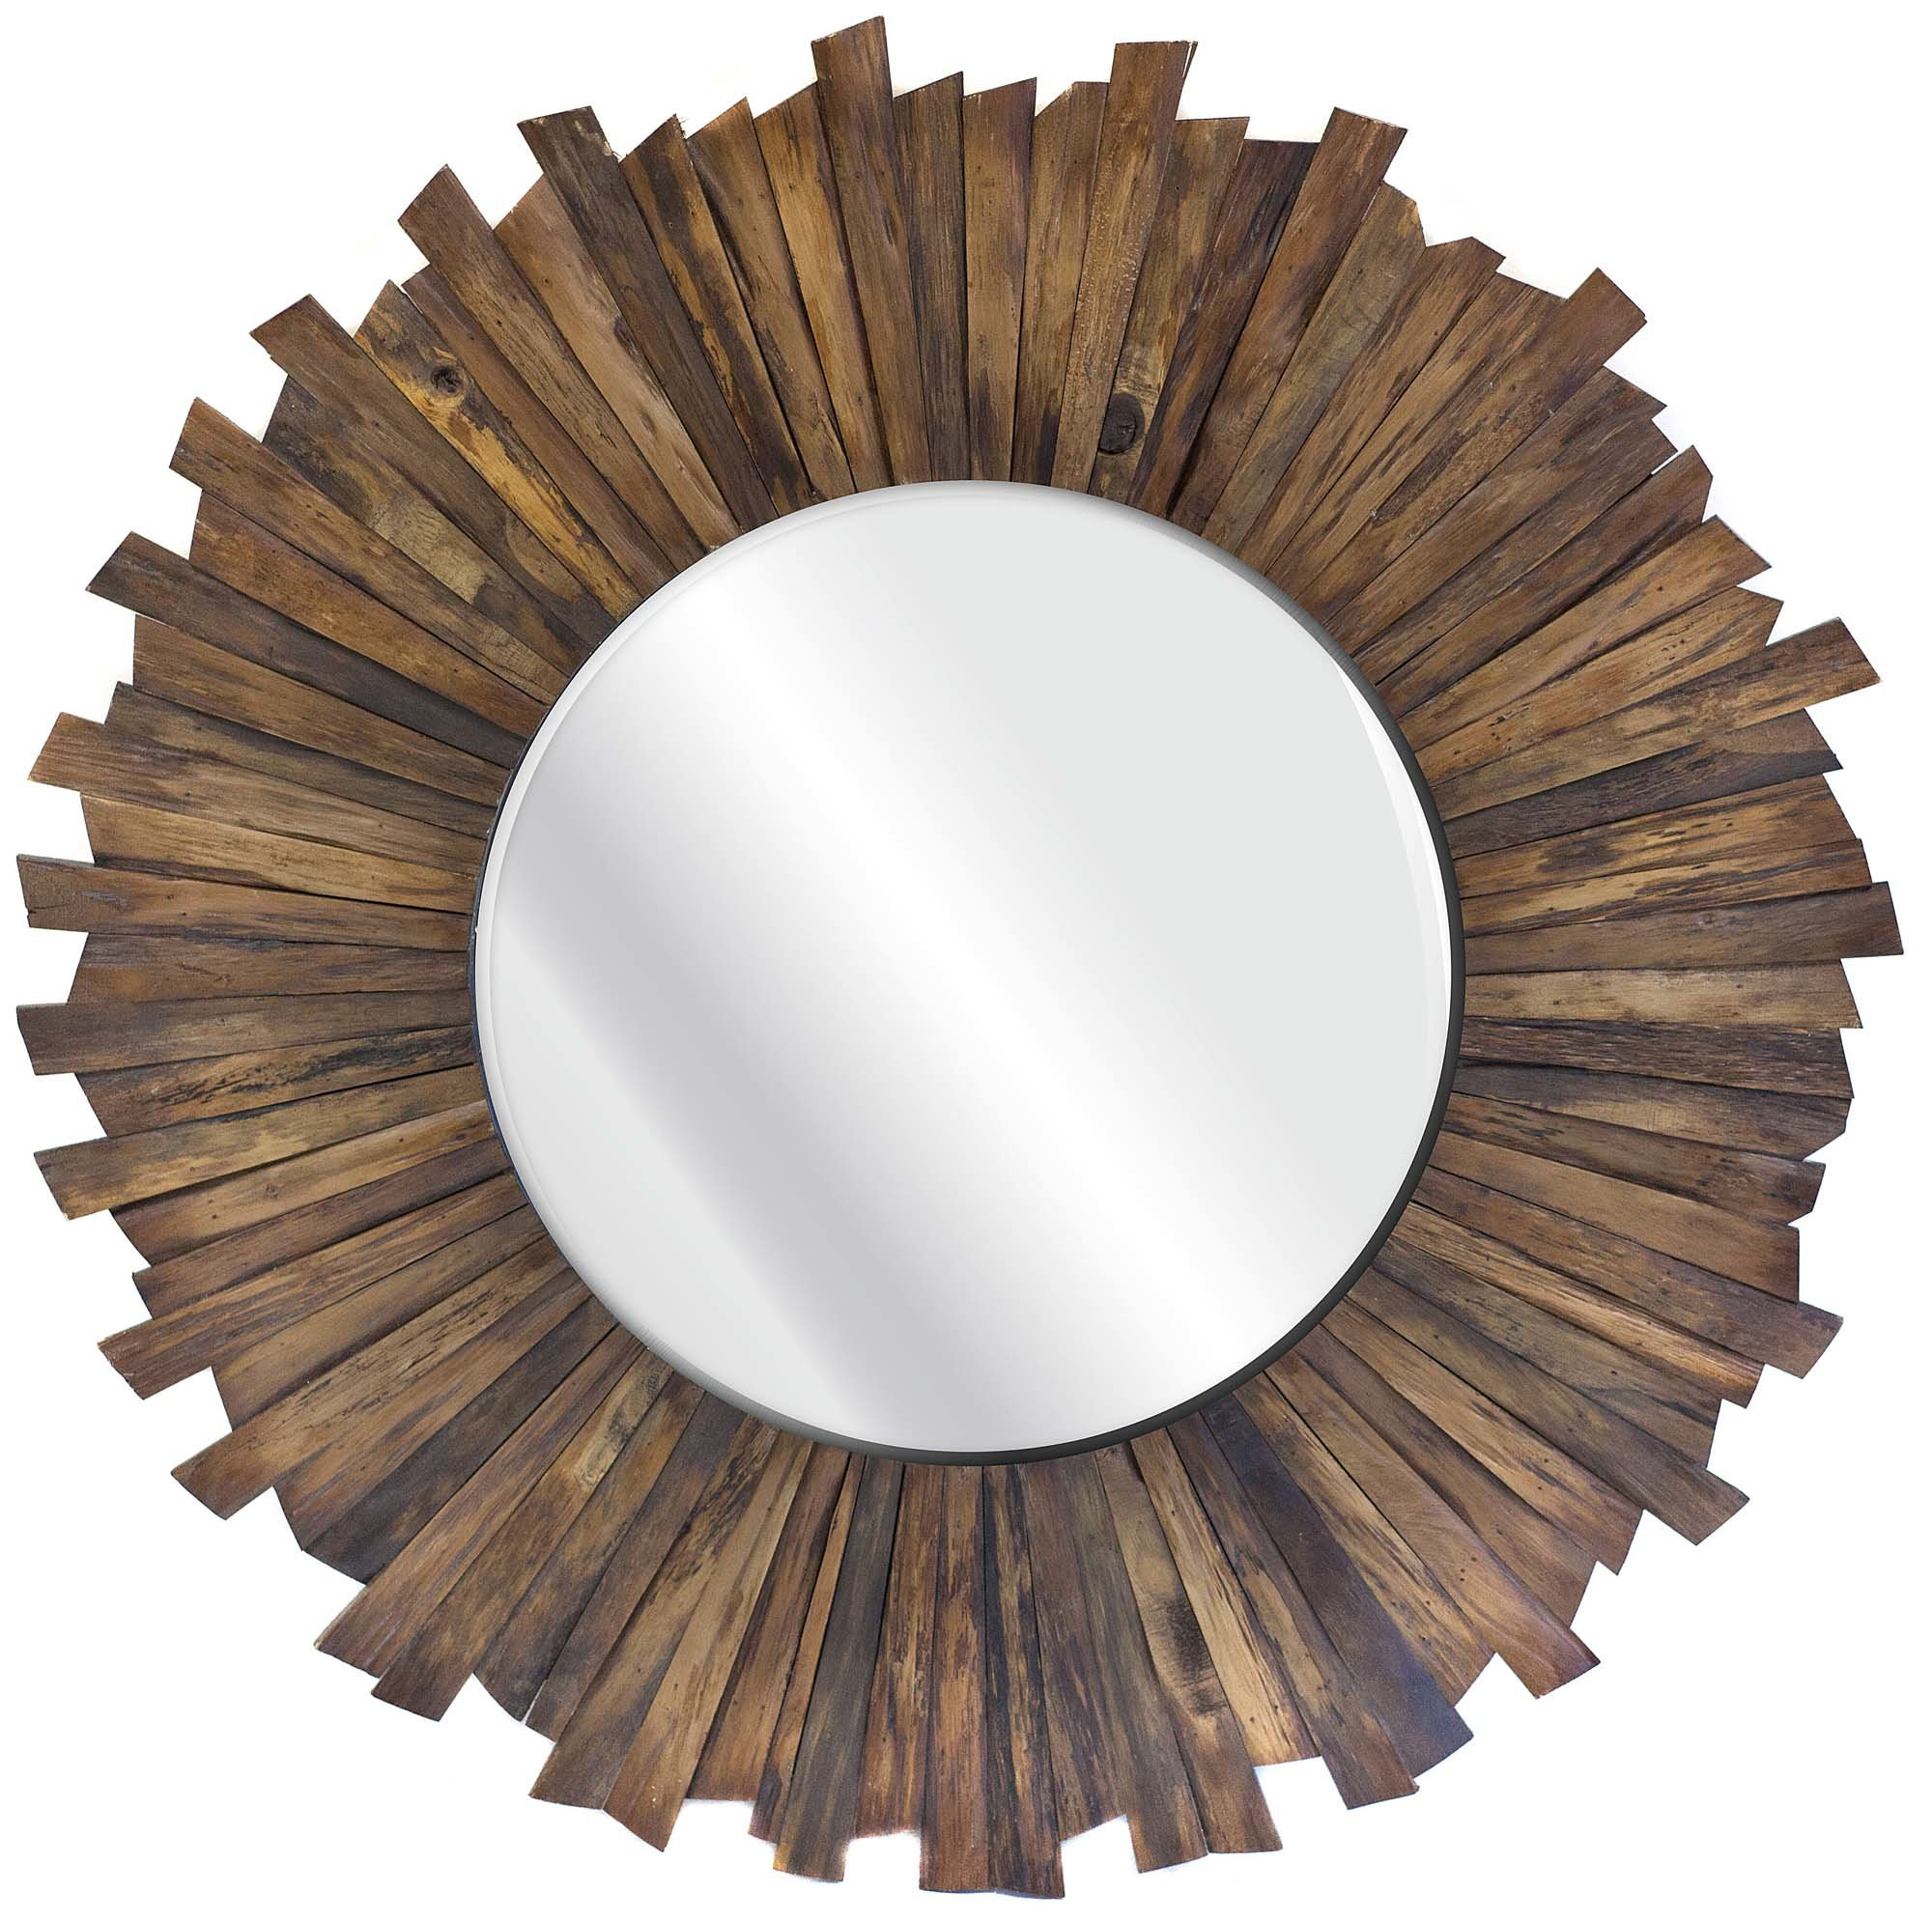 Widely Used Dandir Accent Mirror Pertaining To Perillo Burst Wood Accent Mirrors (View 8 of 20)